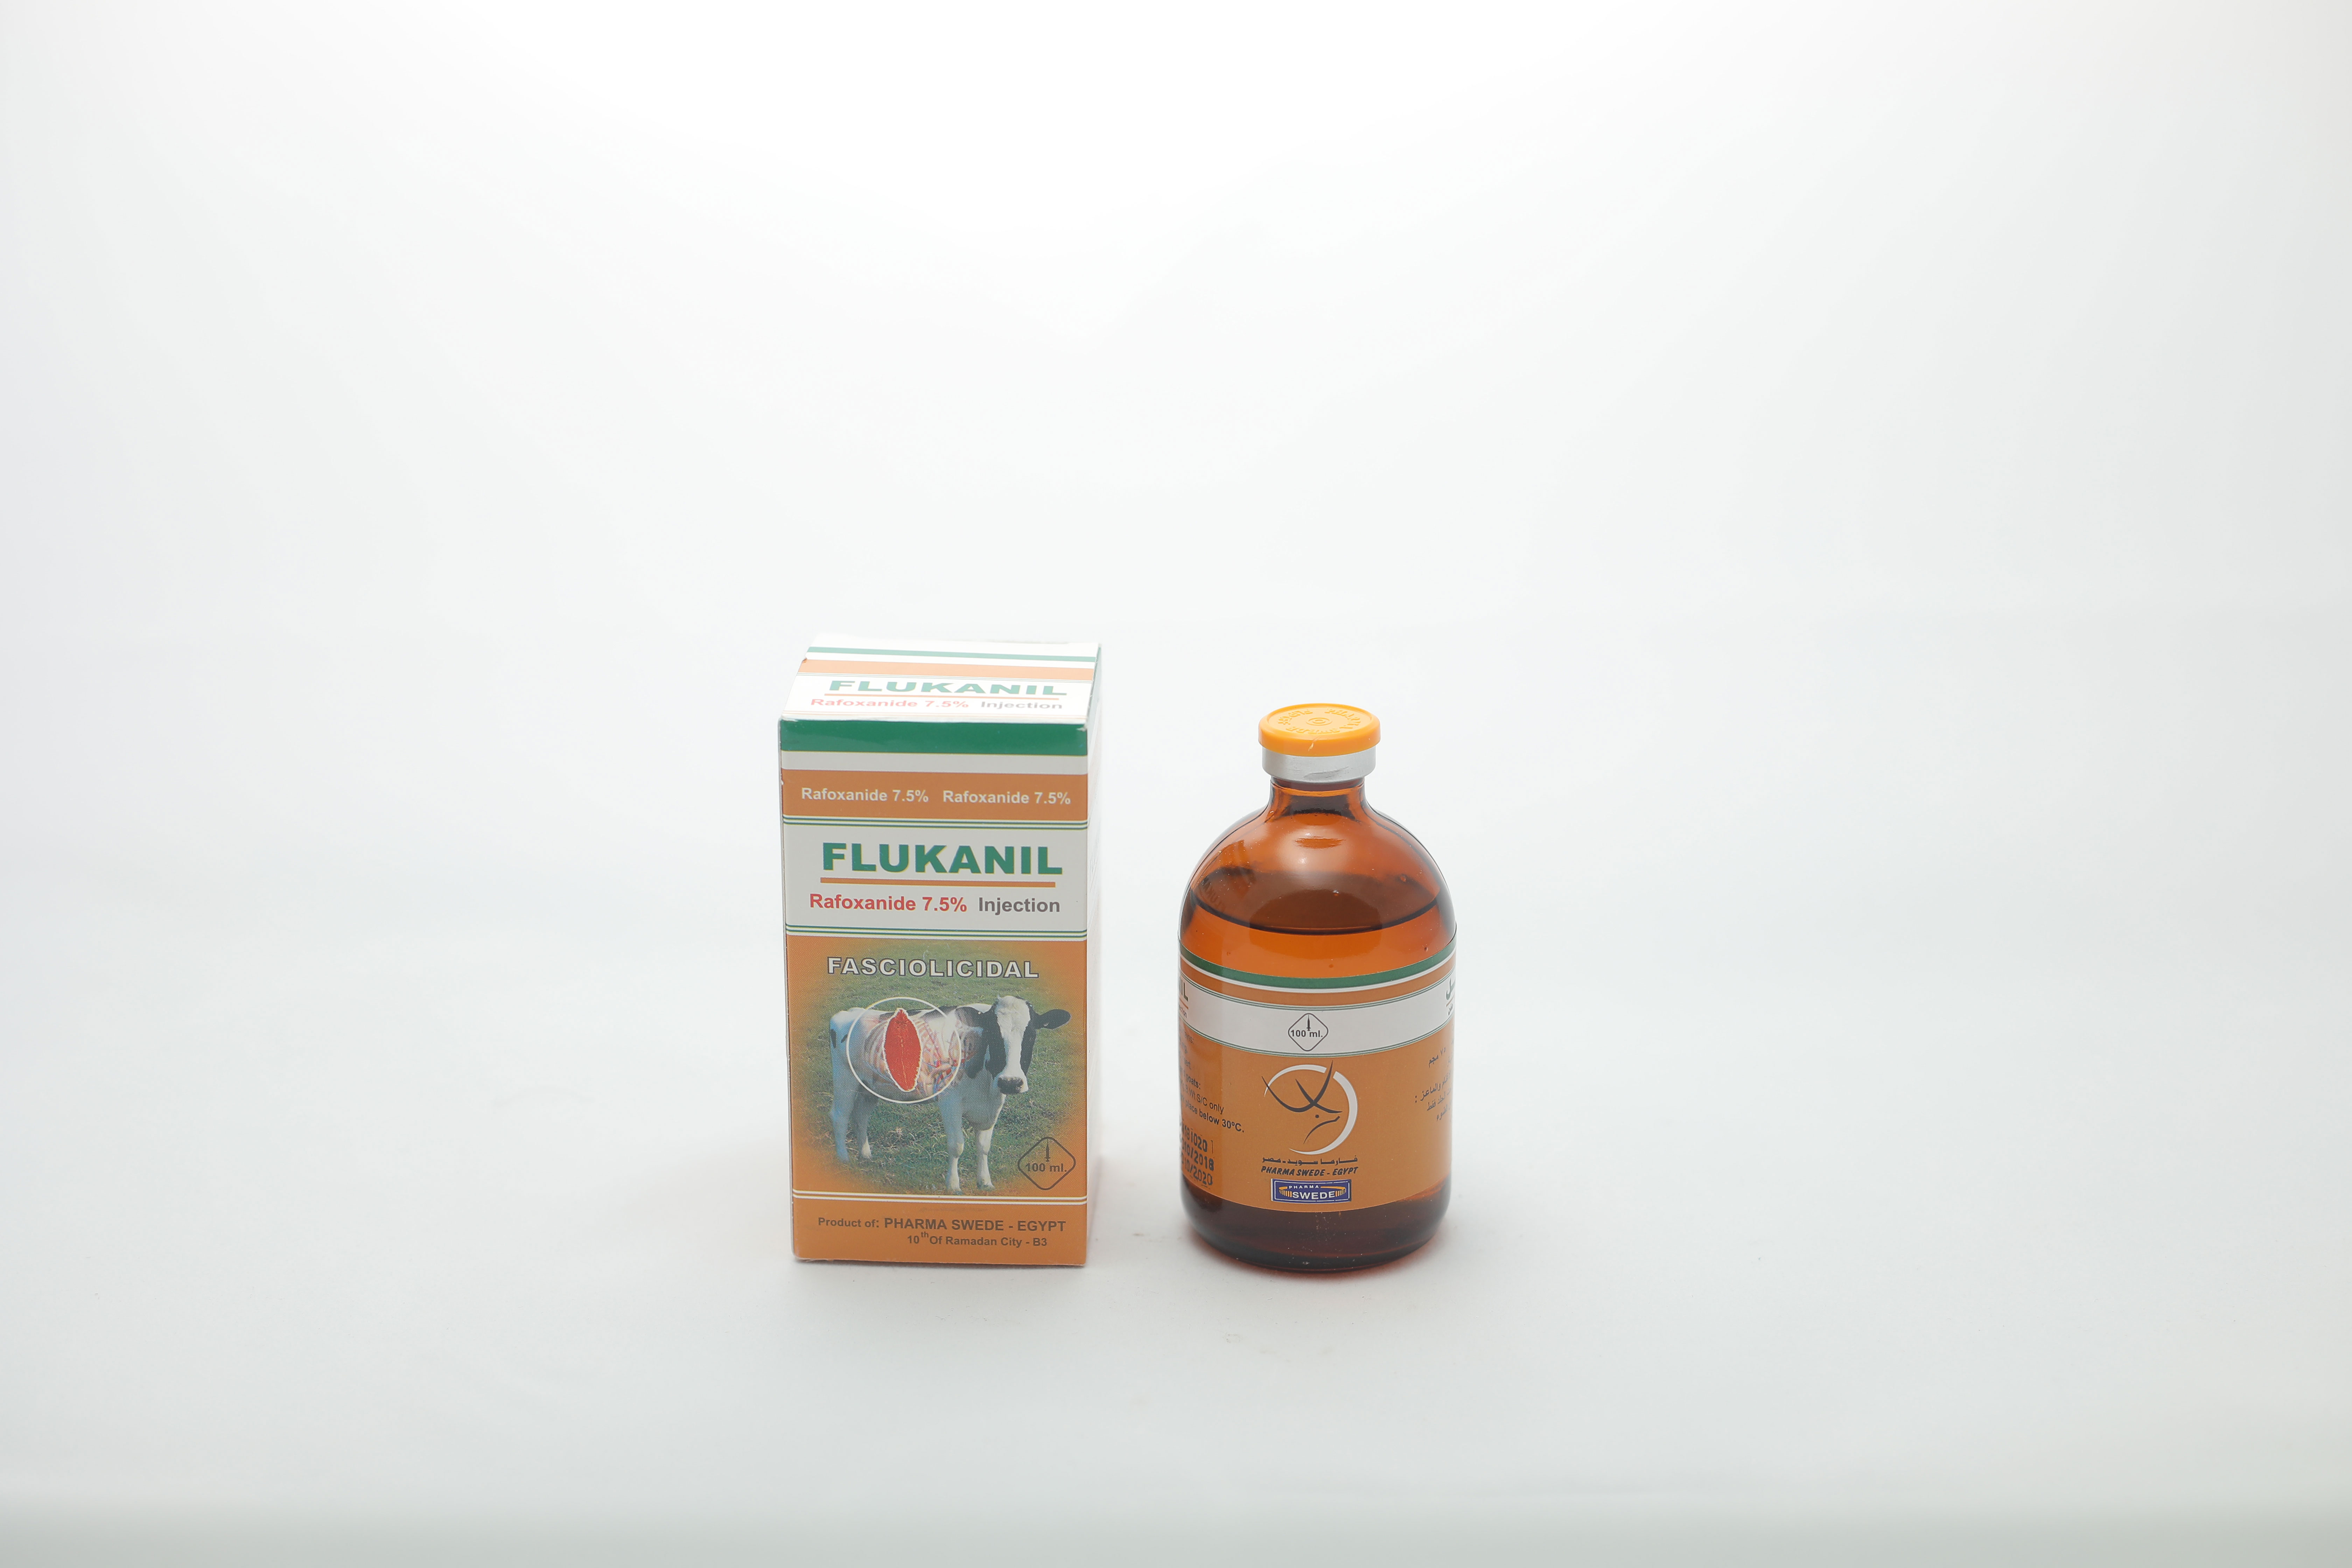 Flukanil 7.5% injection